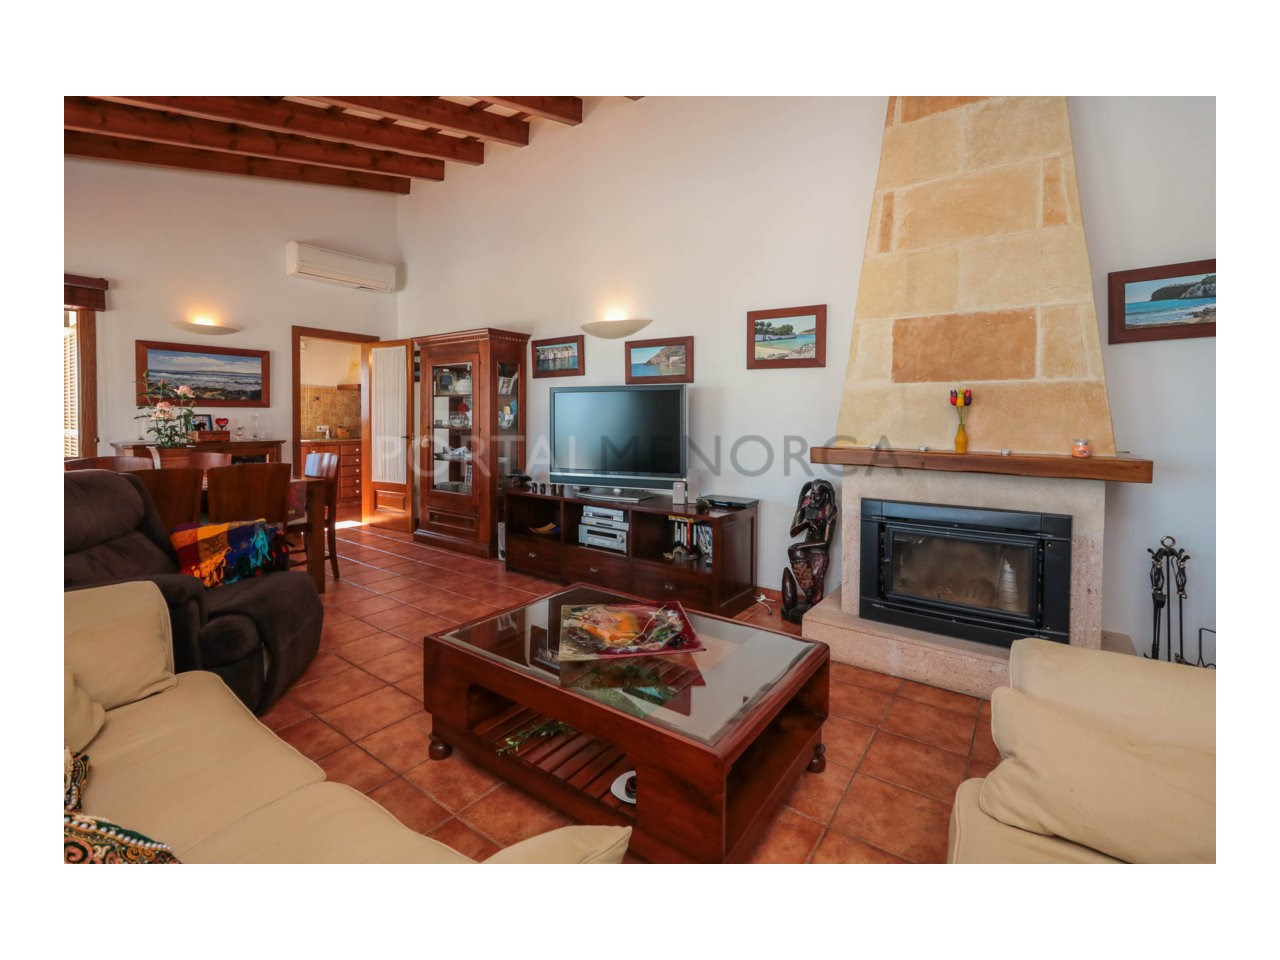 Villa for sale in Cala Morell with sea views and tourist license-Living room with fireplace